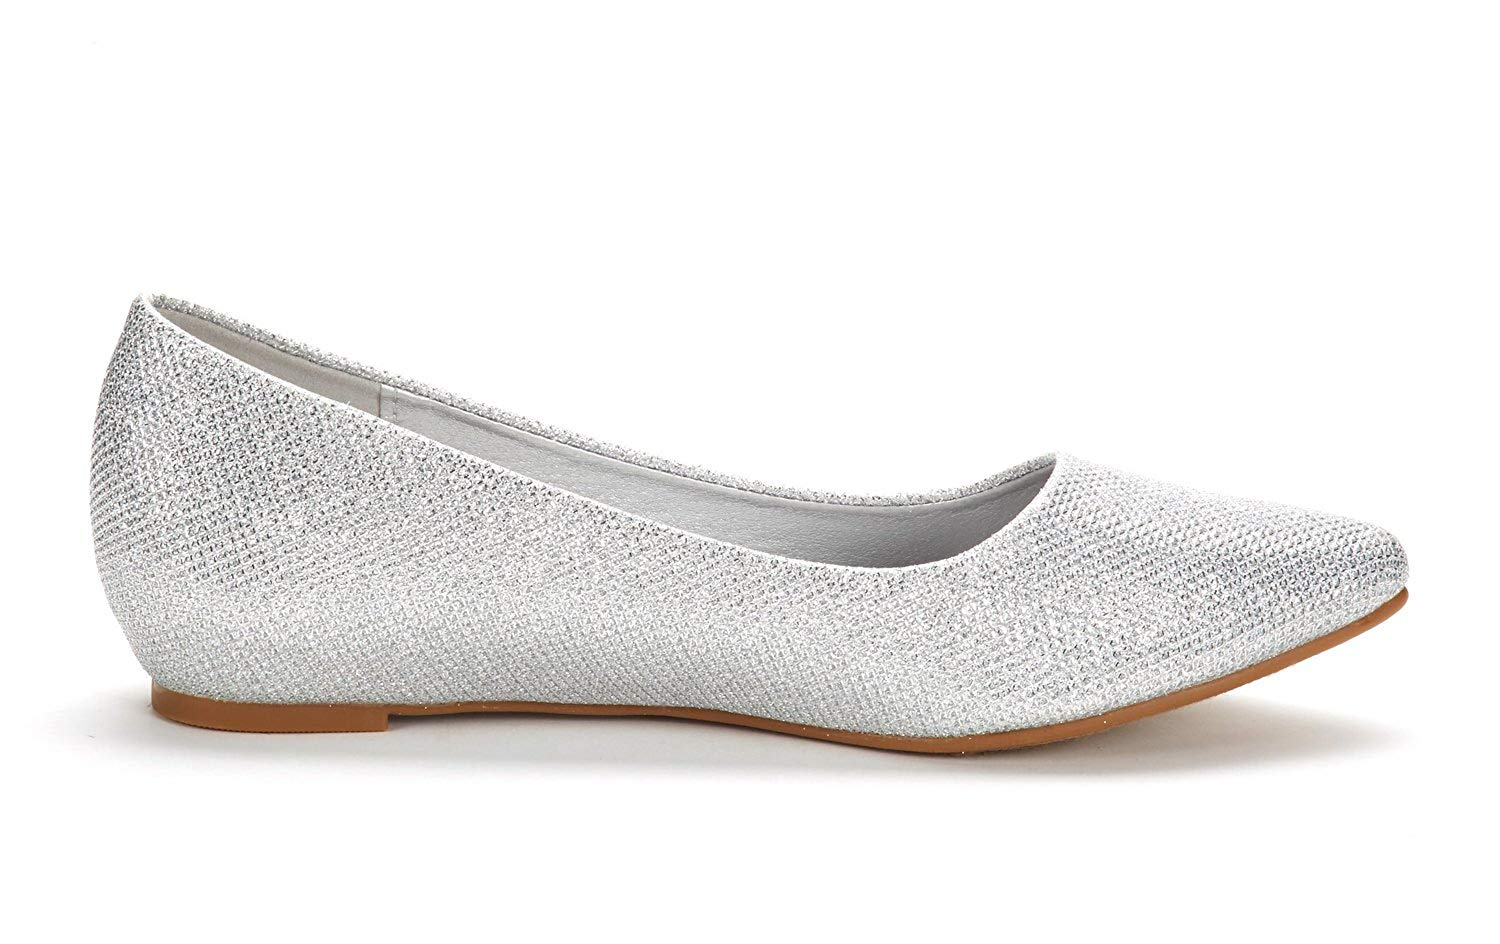 DREAM-PAIRS-Women-Low-Wedge-Flats-Ladies-Pointed-Toe-Slip-On-Comfort-Flat-Shoes thumbnail 20